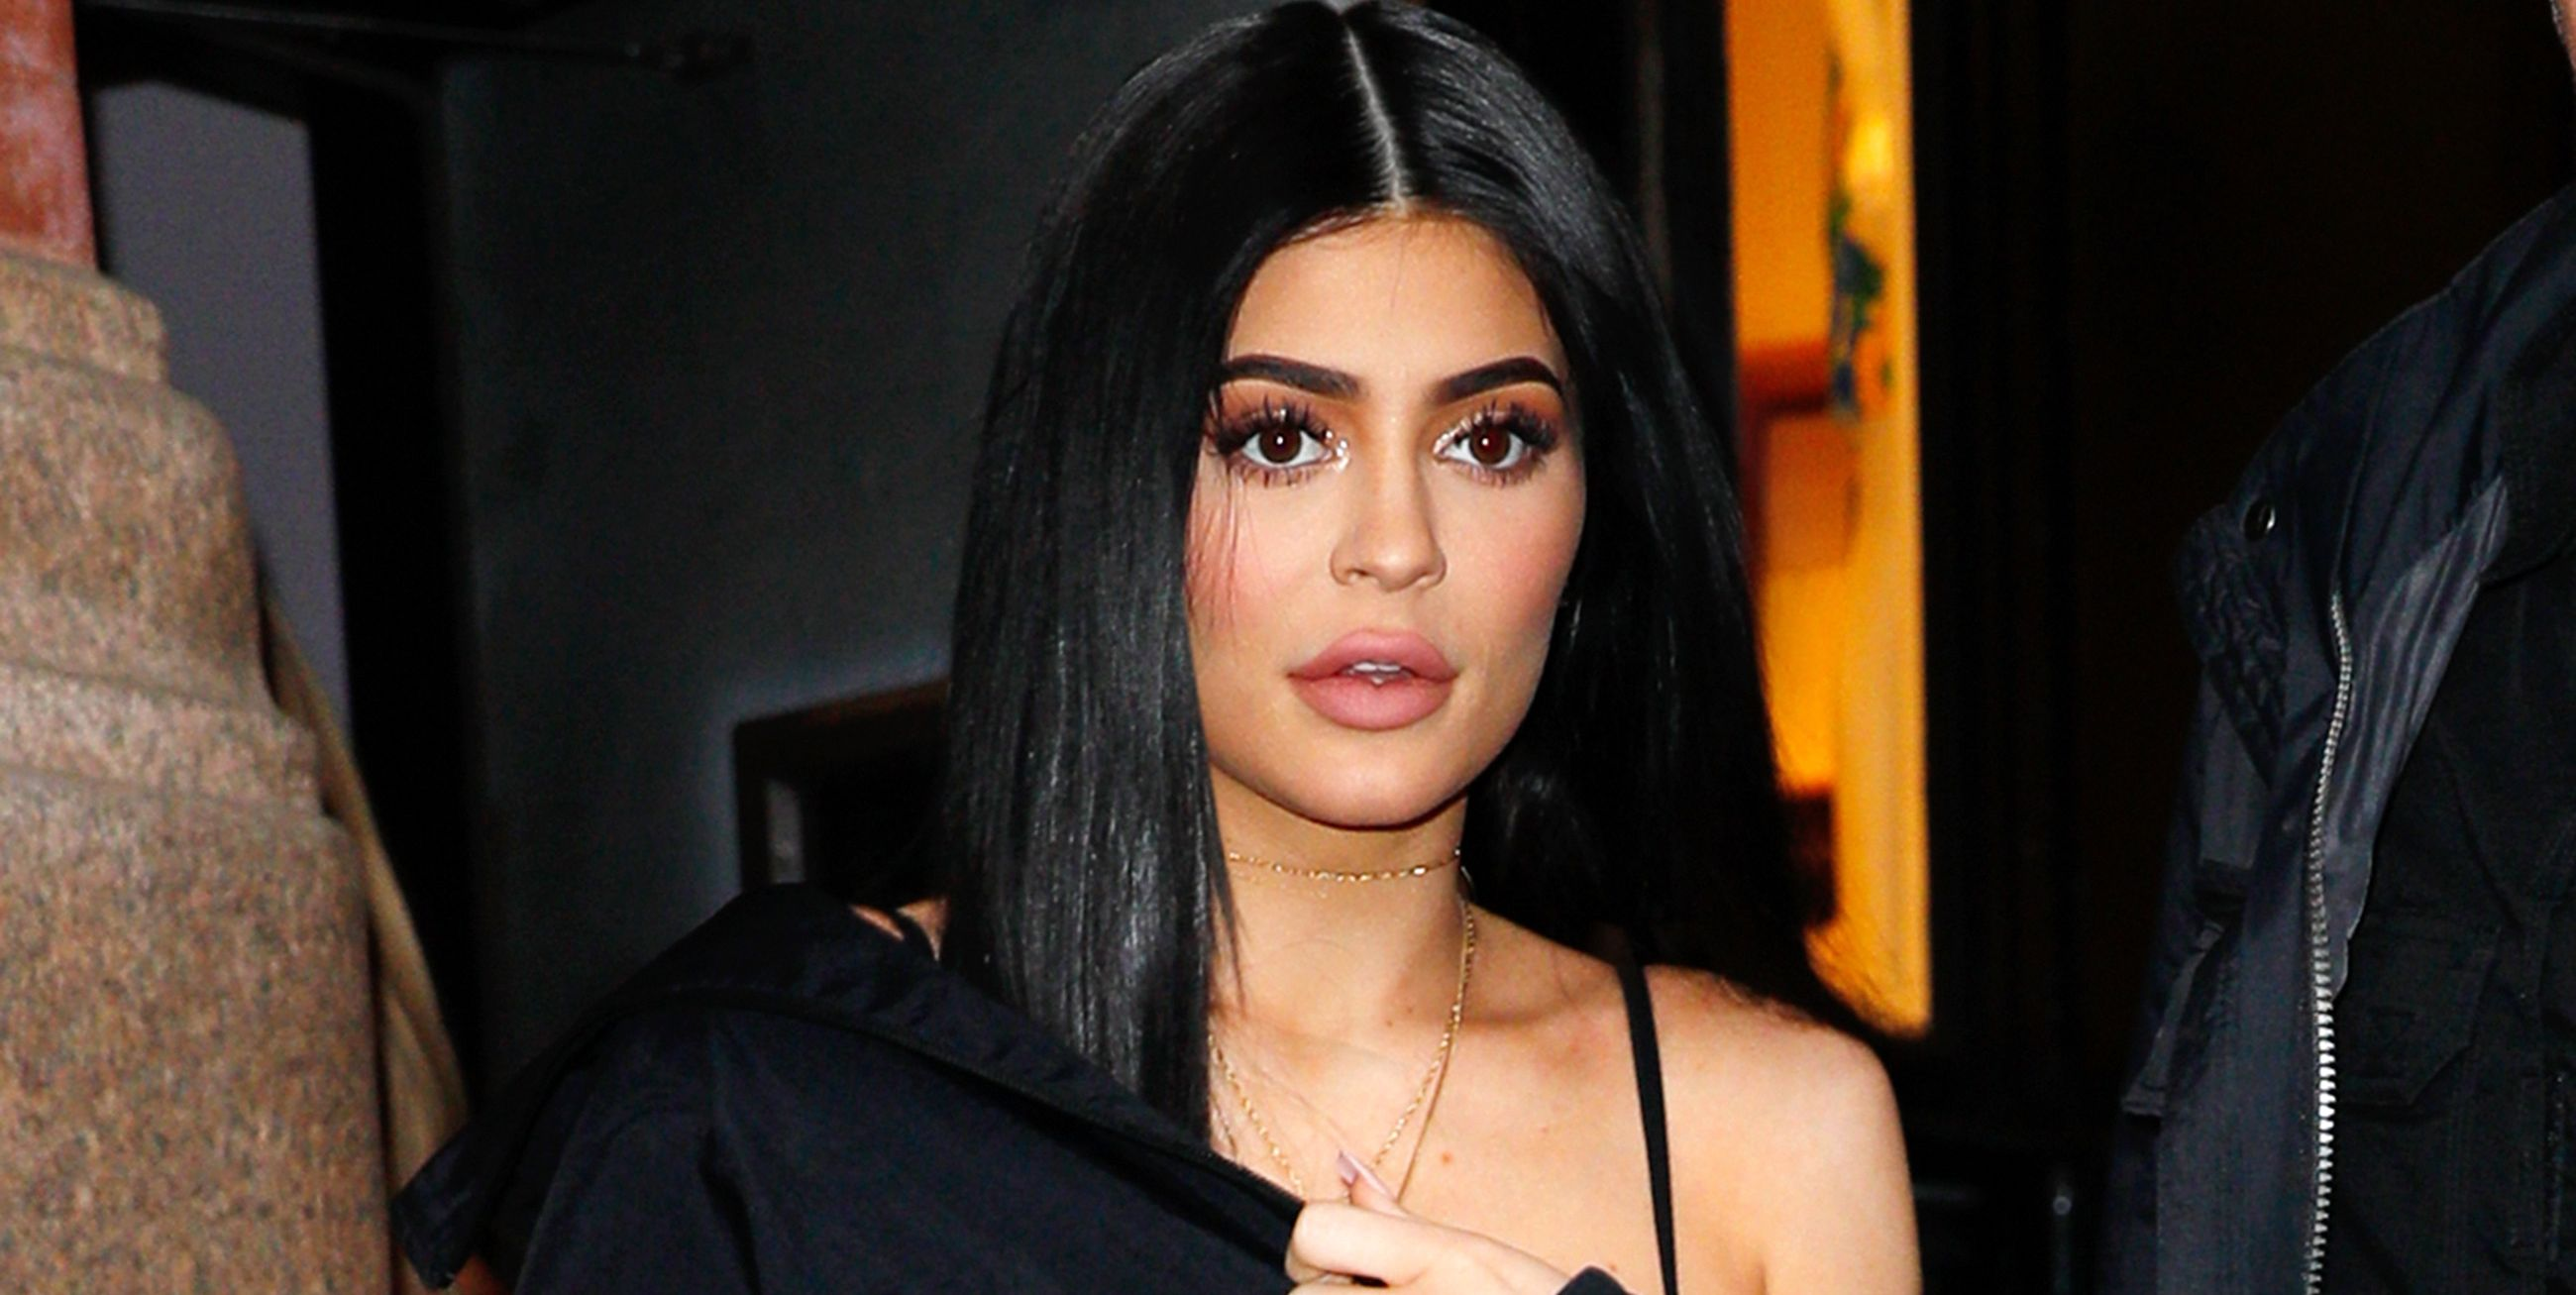 Hold Up, Where Is Kylie Jenner in This KUWTK Christmas Special Photo?